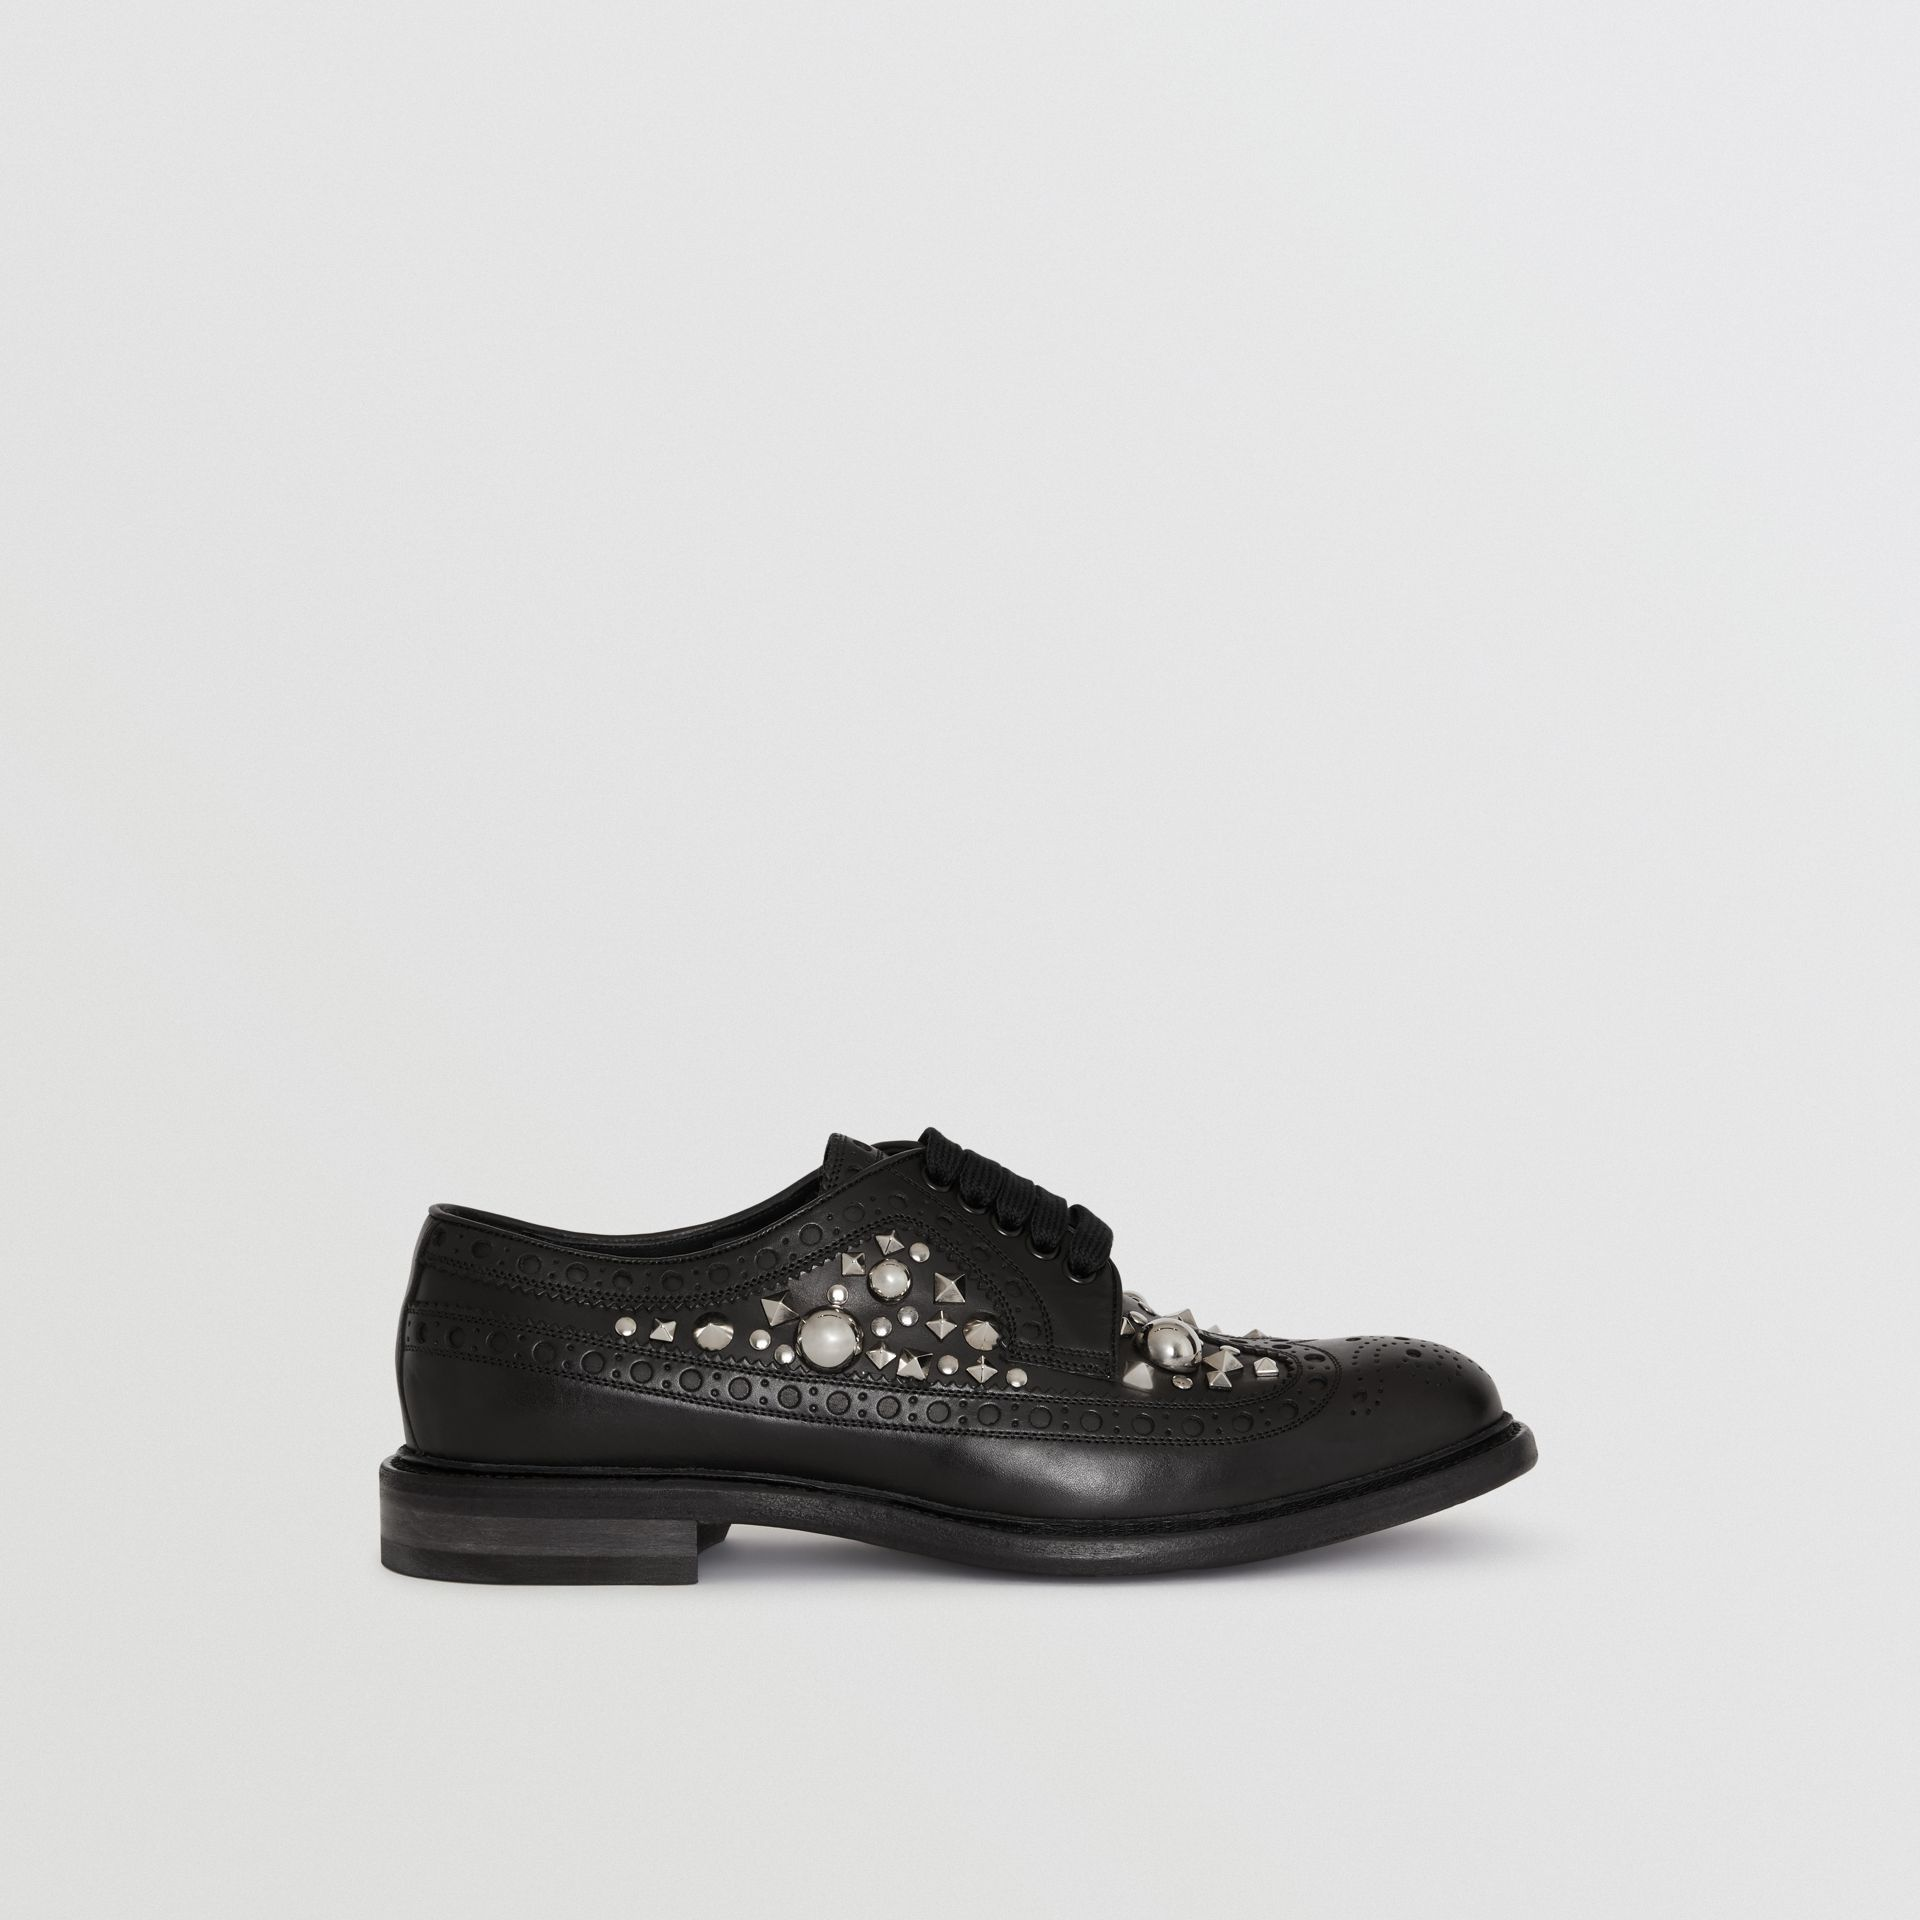 Stud Detail Leather Brogues in Black - Men | Burberry Canada - gallery image 5